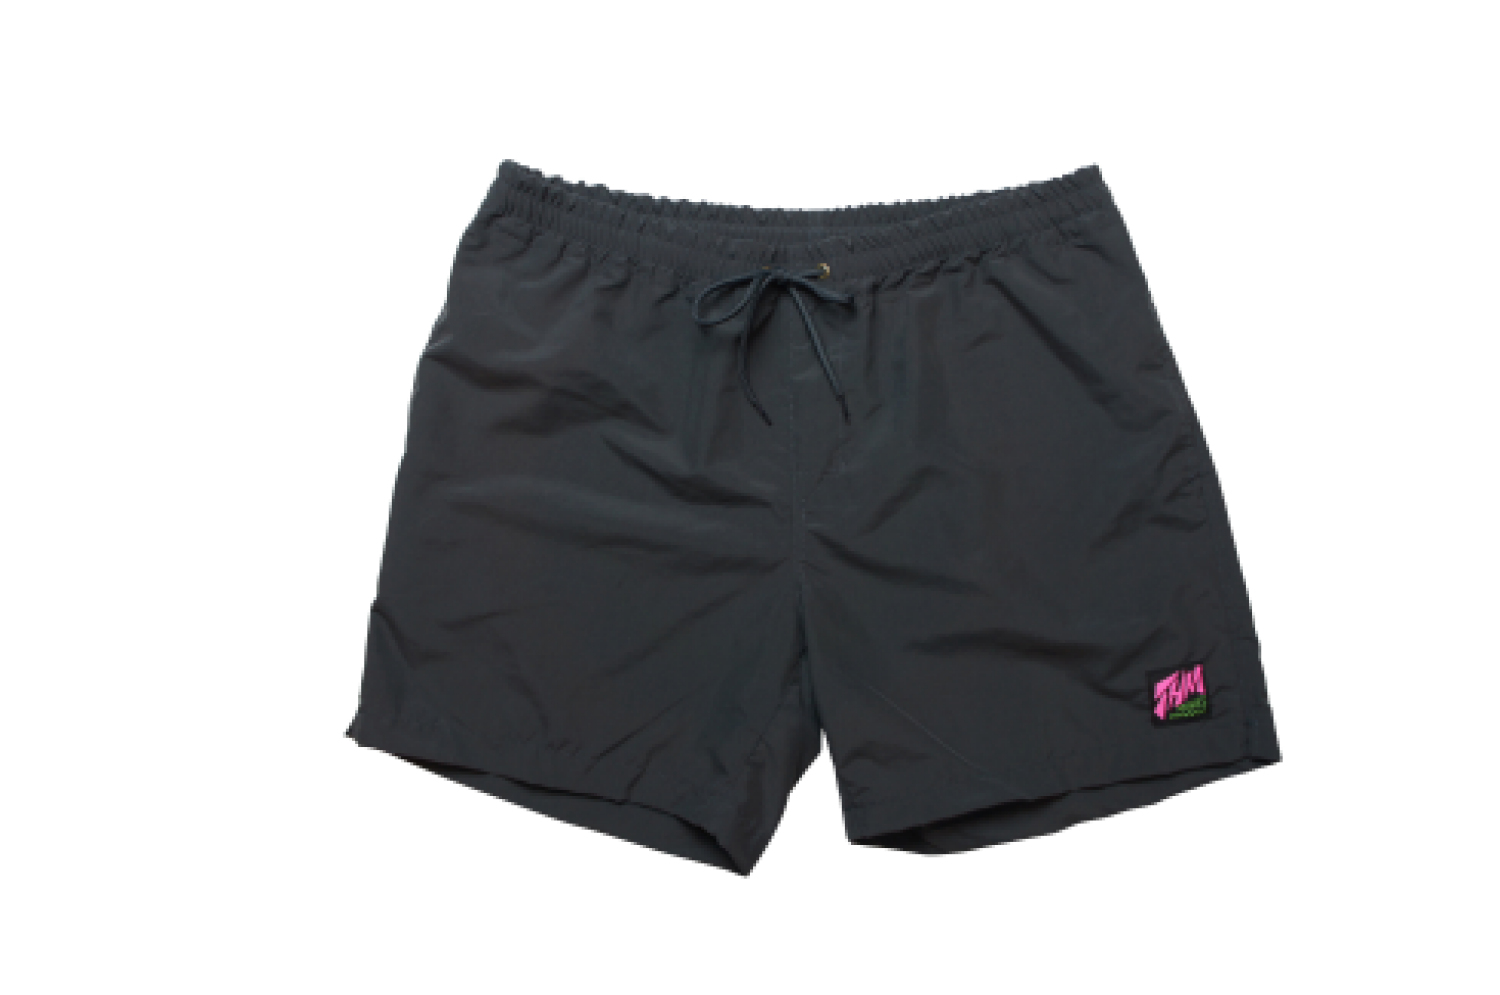 [THE HARD MAN] Shirring shorts Solid ネイビー